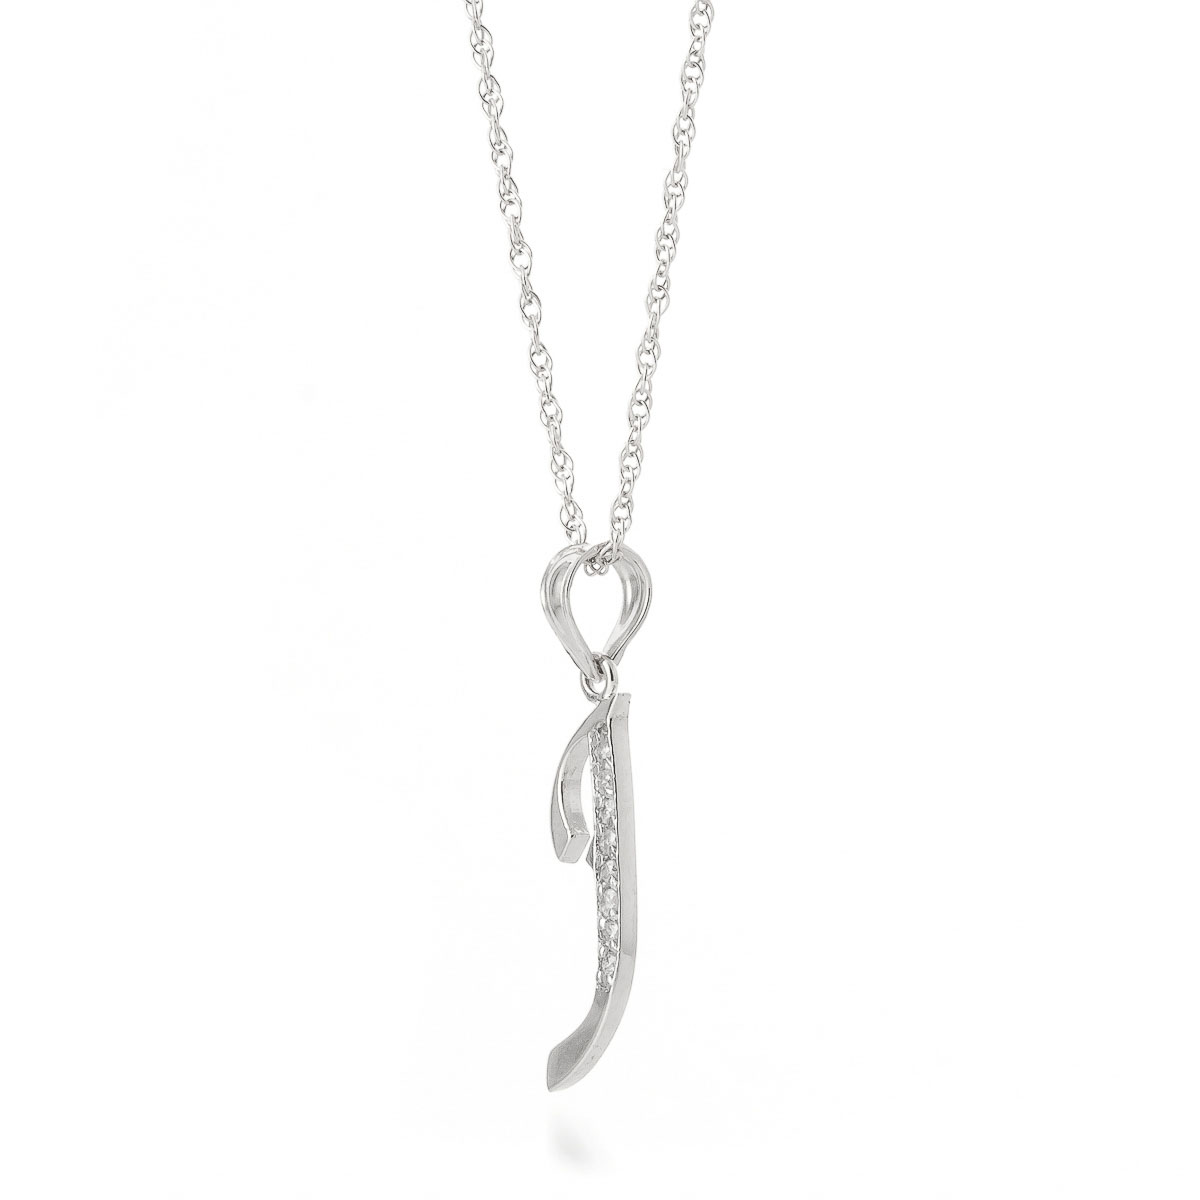 302170cab4aae Diamond Letter Initial J Pendant Necklace in 9ct White Gold